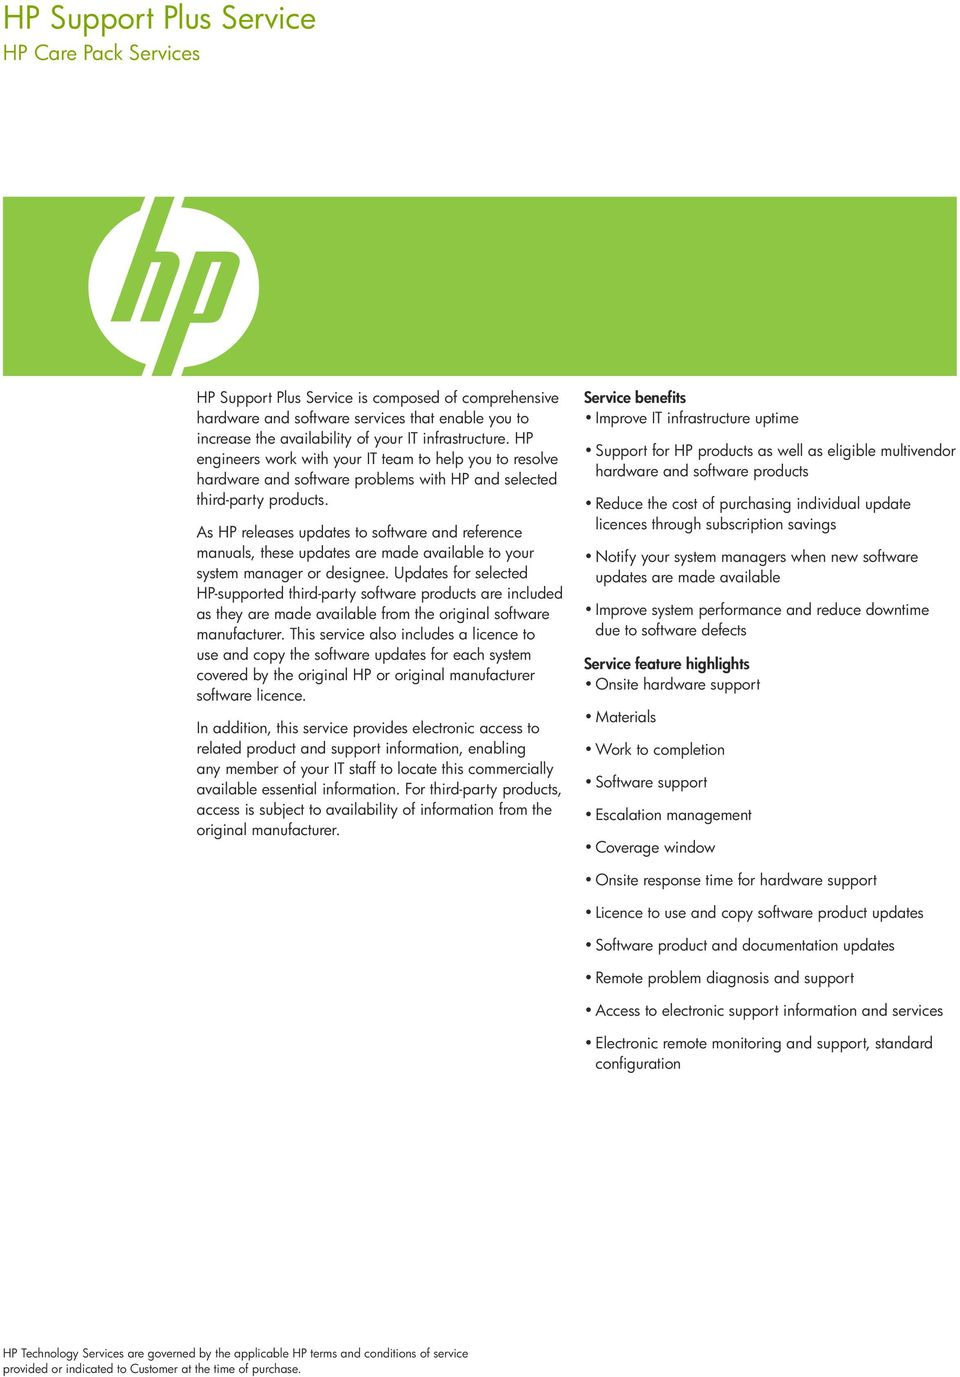 As HP releases updates to software and reference manuals, these updates are made available to your system manager or designee.